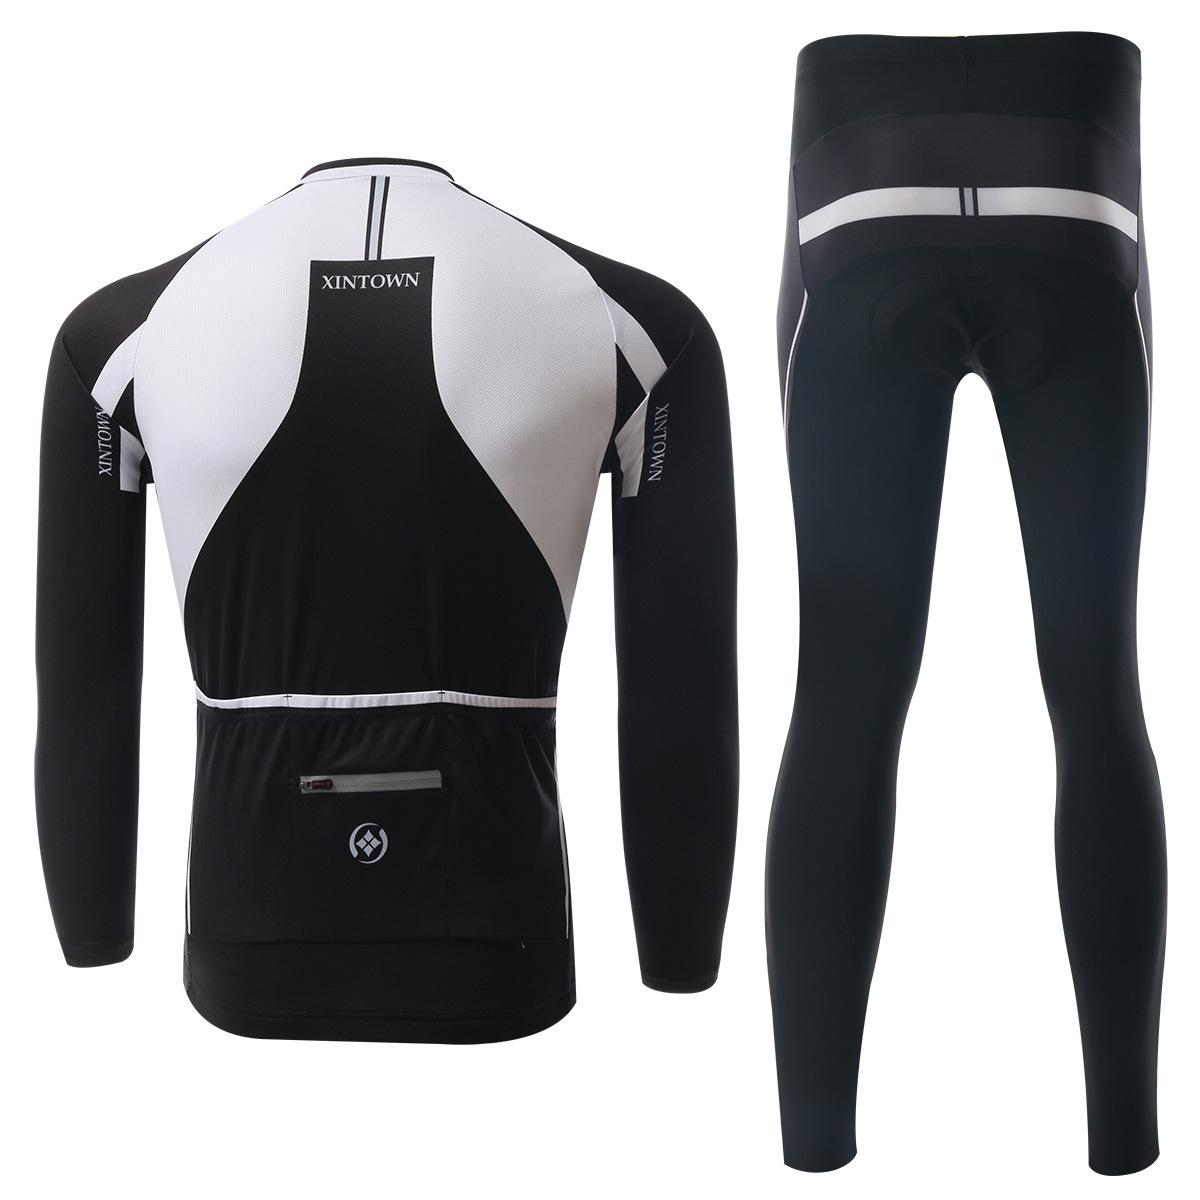 BOODUN Loong As White Riding Clothes Long Sleeve Bicycle Serve Catch Down Windbreak Keep Warm Function Underwear